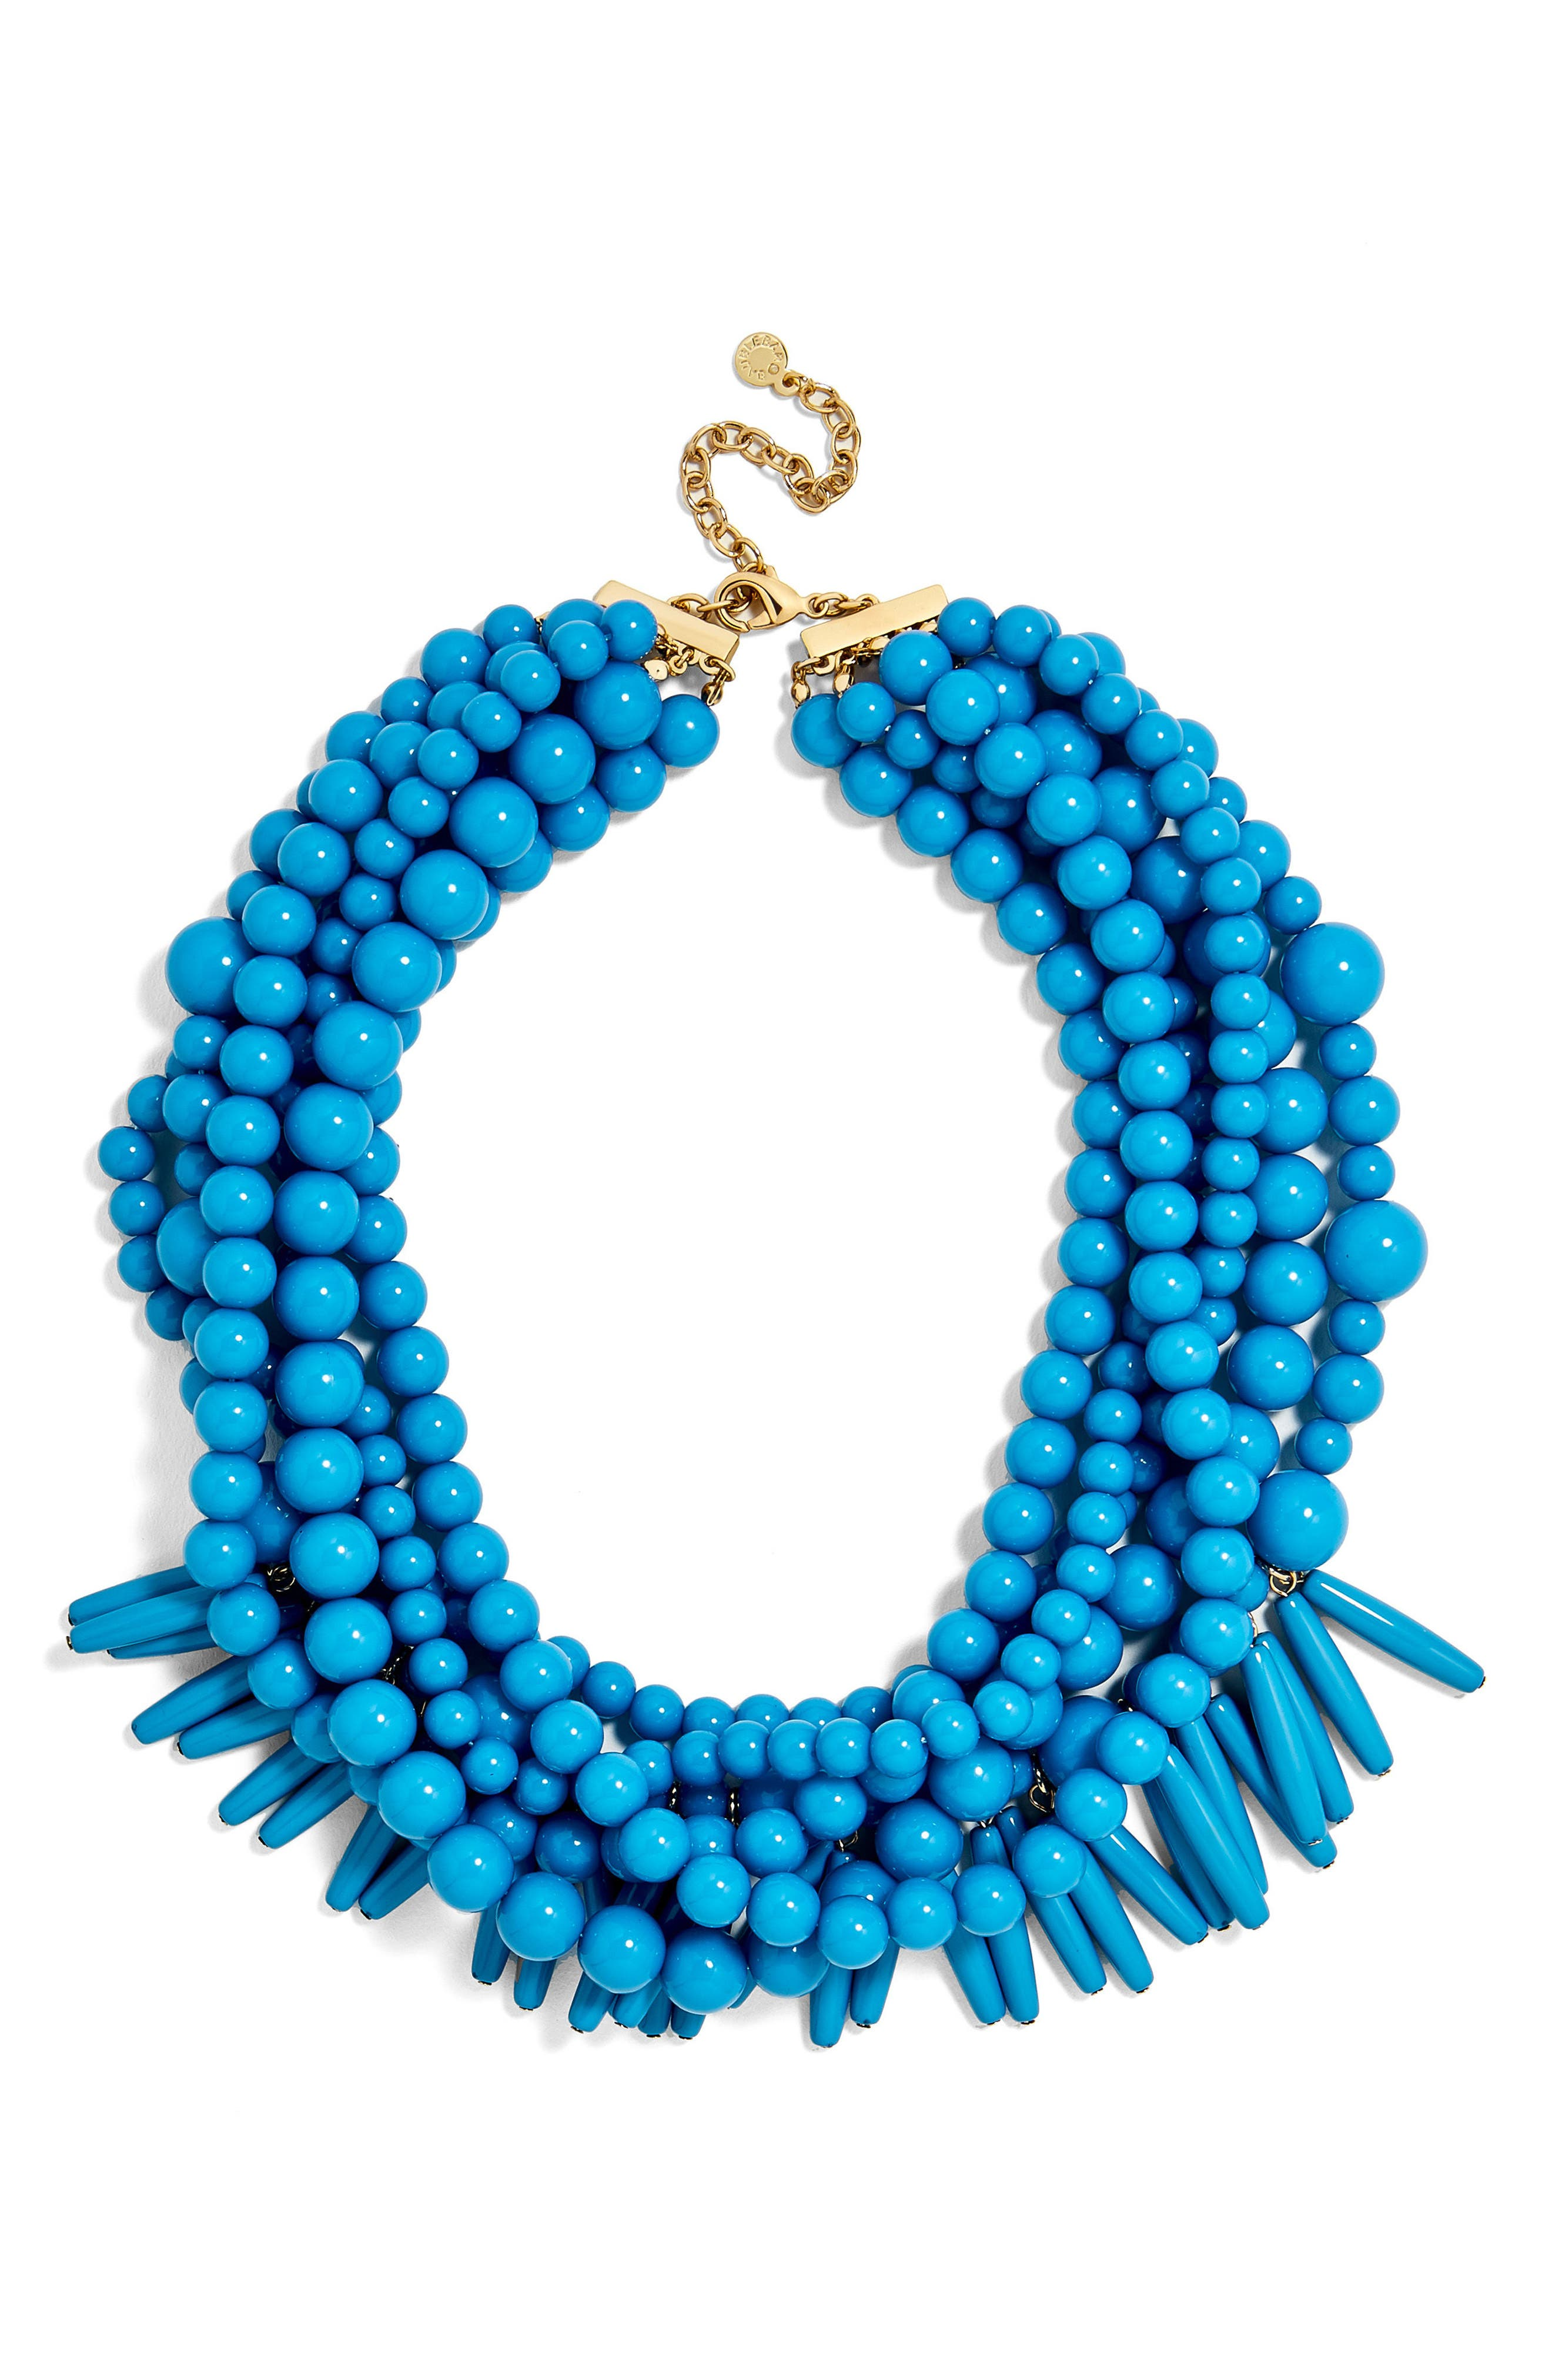 Malibu Beaded Necklace,                             Main thumbnail 1, color,                             400